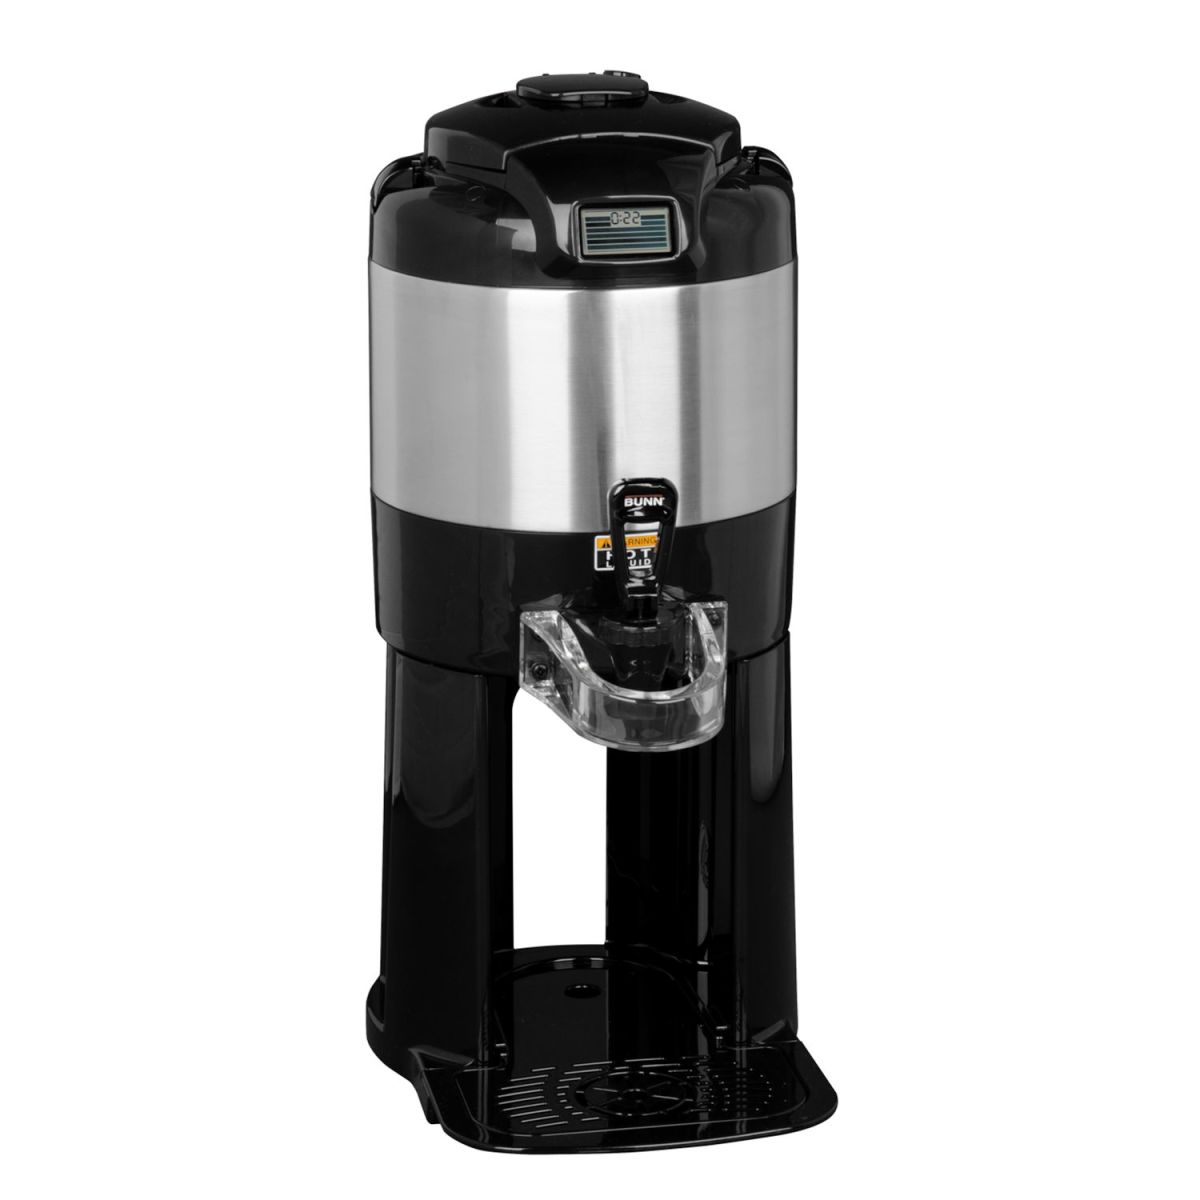 1Gal(3.8L) TF Server -with Base- Digital Sight Gauge, Stainless Steel